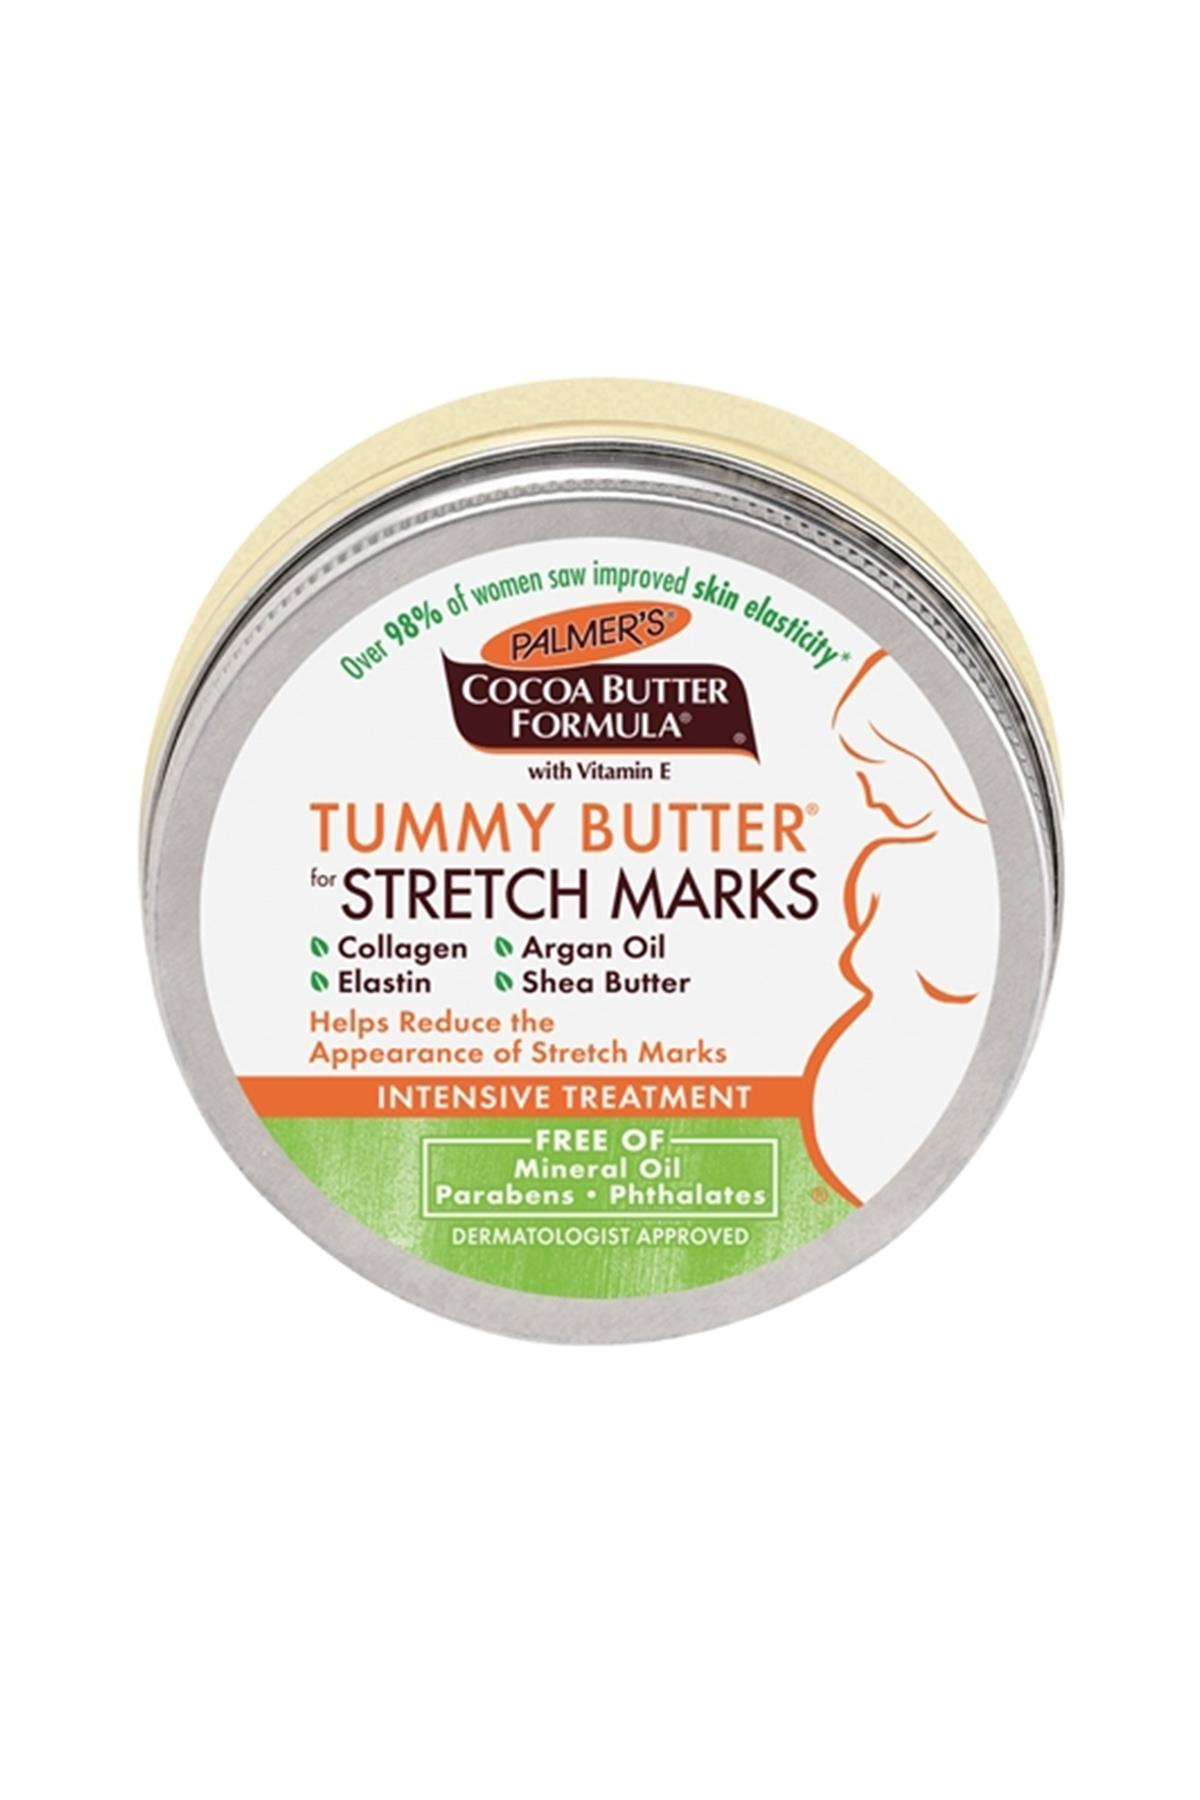 Palmer's Cocoa Butter Formula Tummy Butter Stretch Marks 125 gr